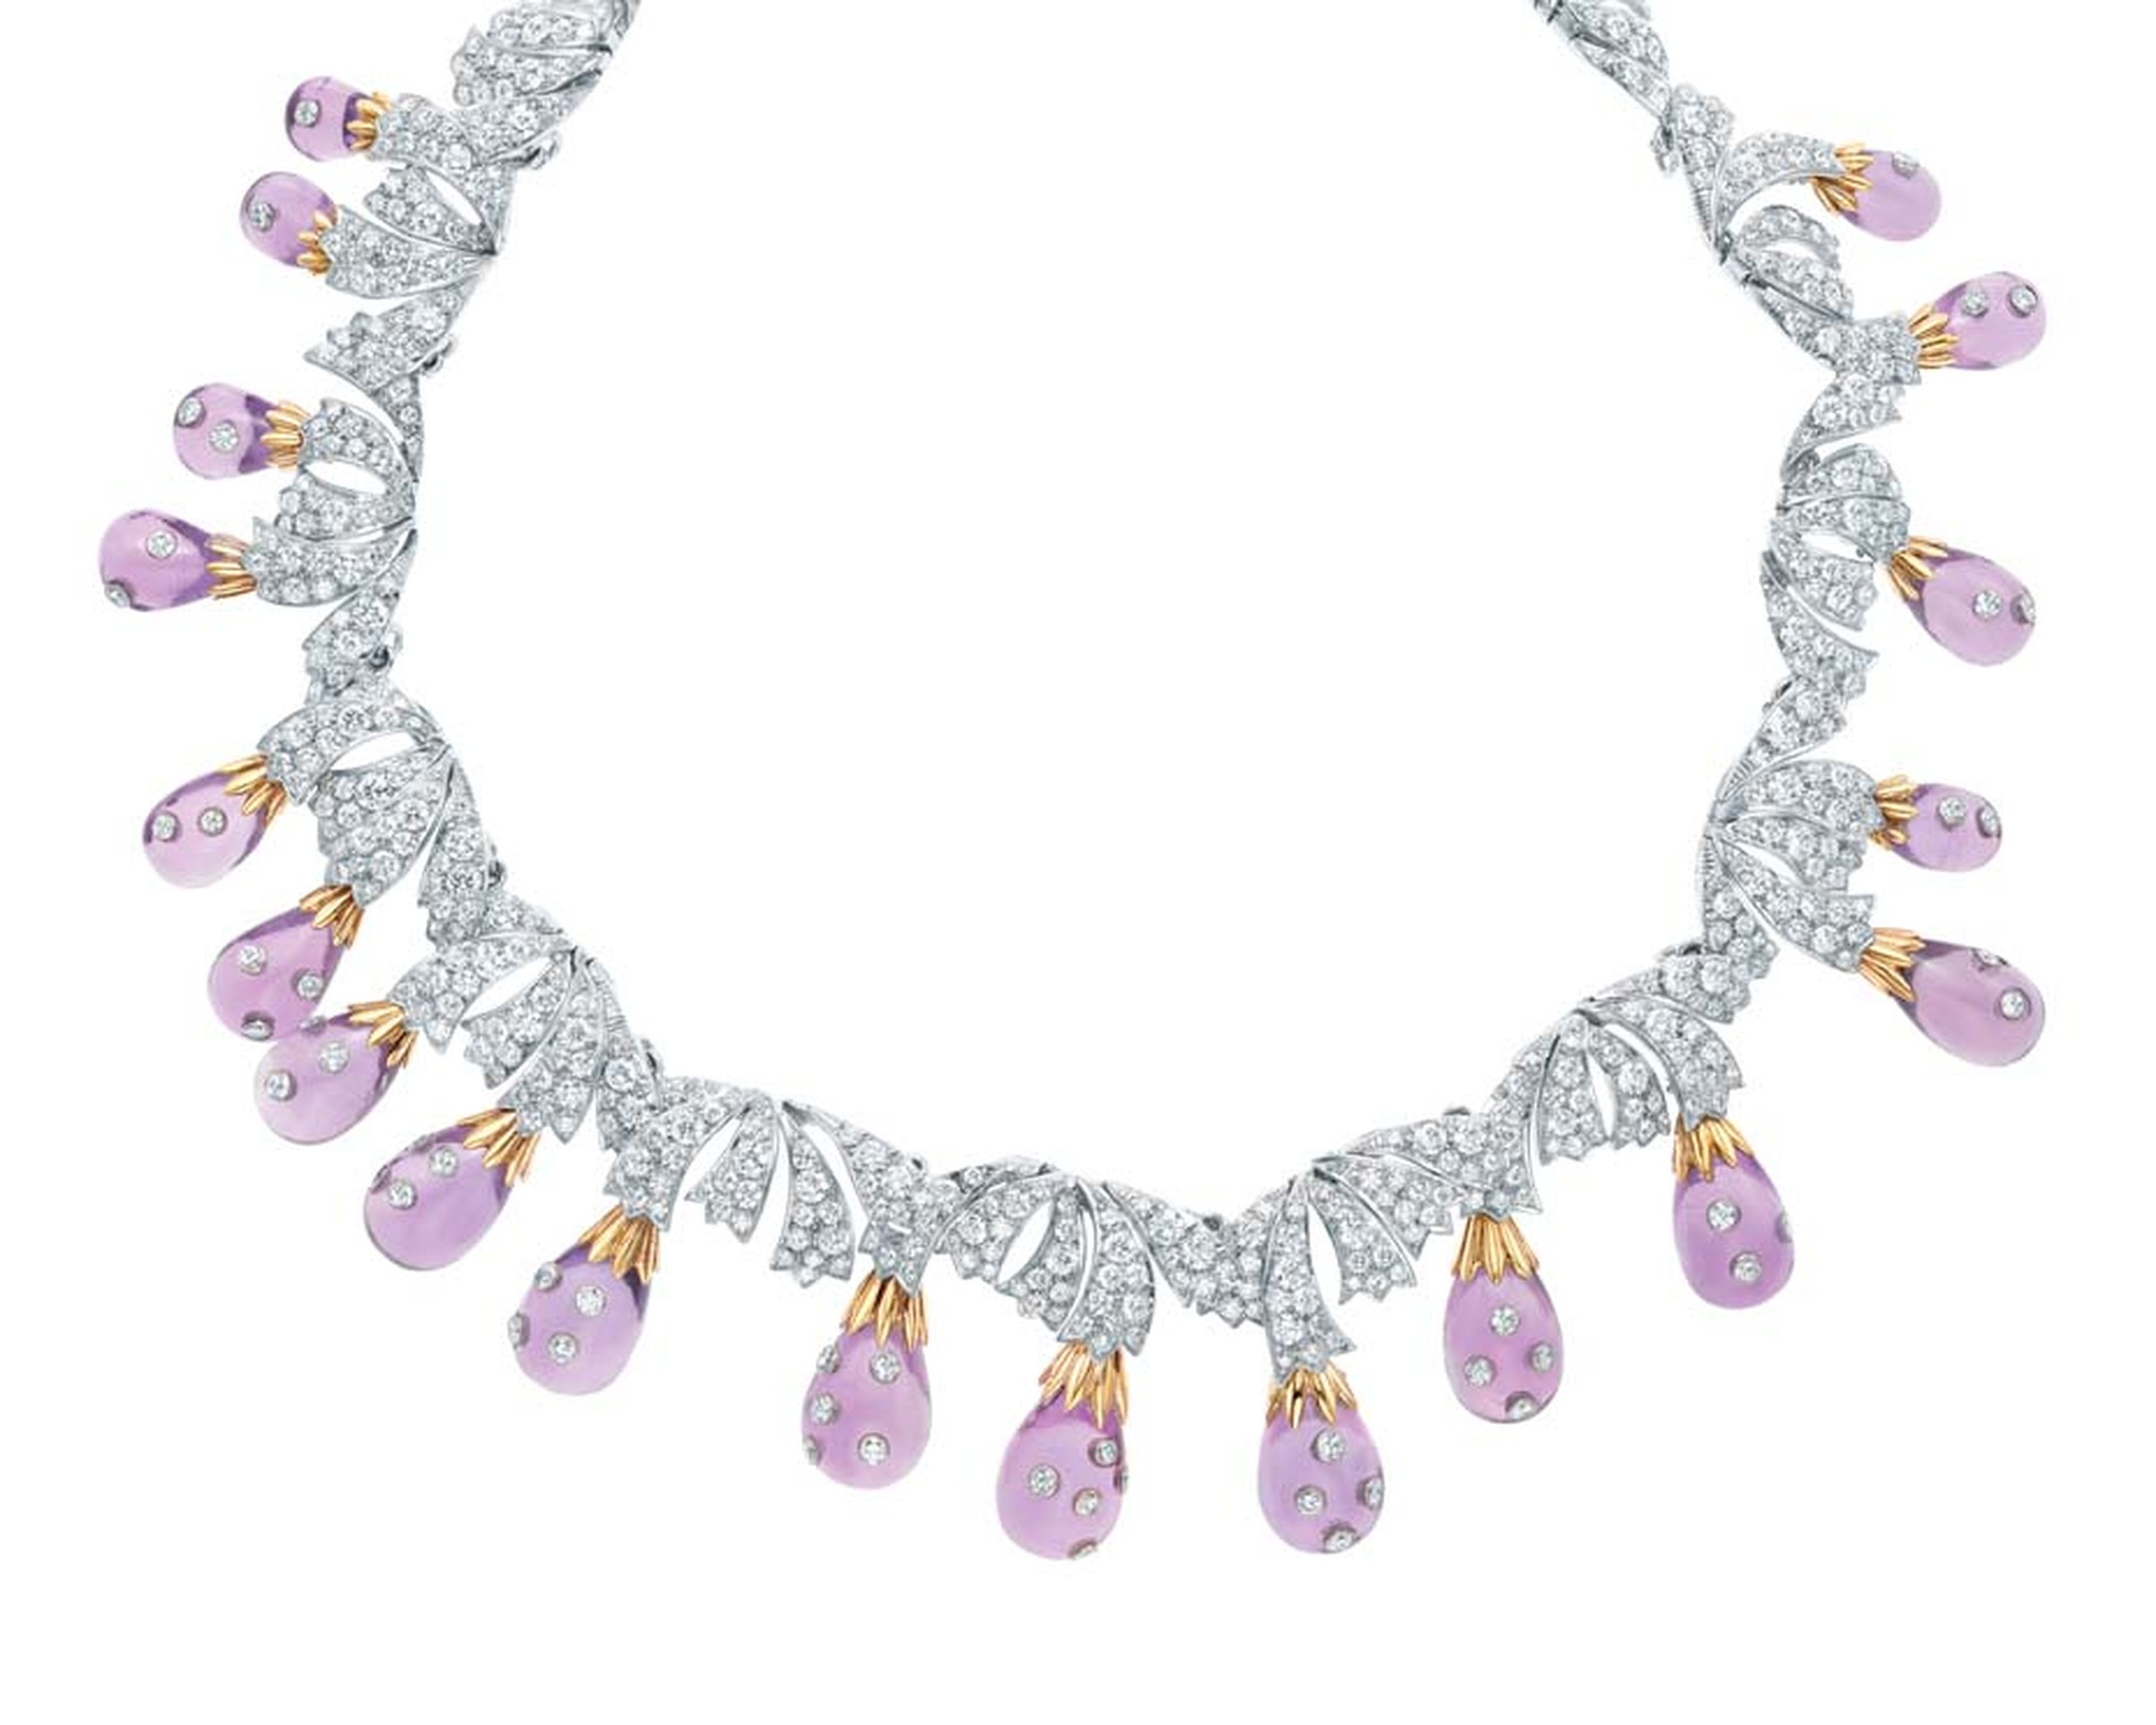 Jean Schlumberger for Tiffany & Co. gold and platinum necklace with diamonds set into amethysts.